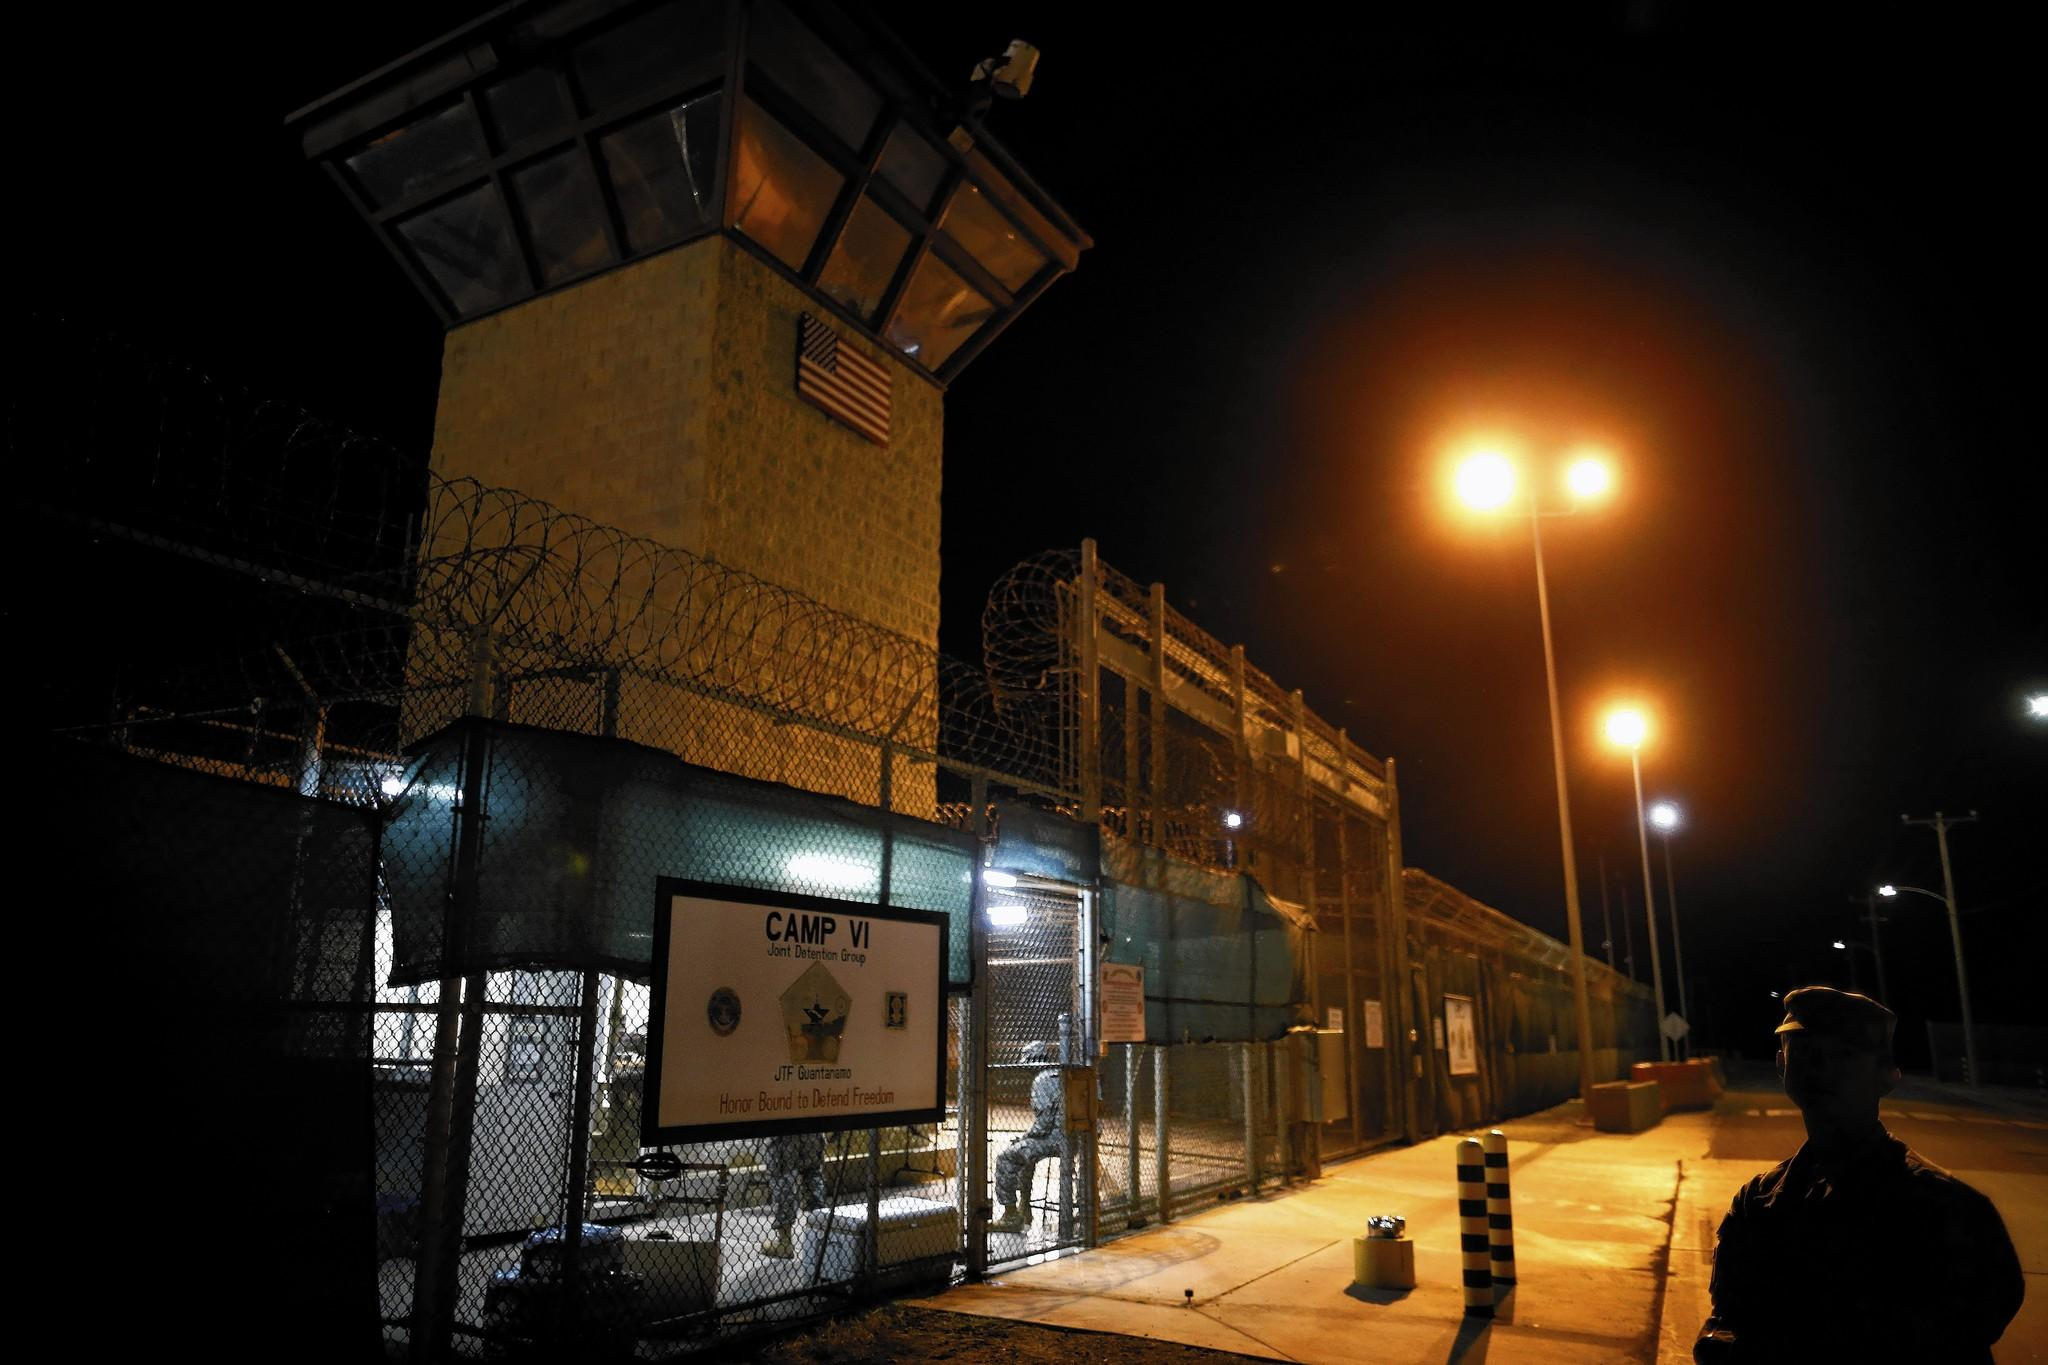 A Yemeni man has been cleared for release from Guantanamo Bay, after the first in a series of review hearings that the Obama administration is holding to speed the prison's closure.